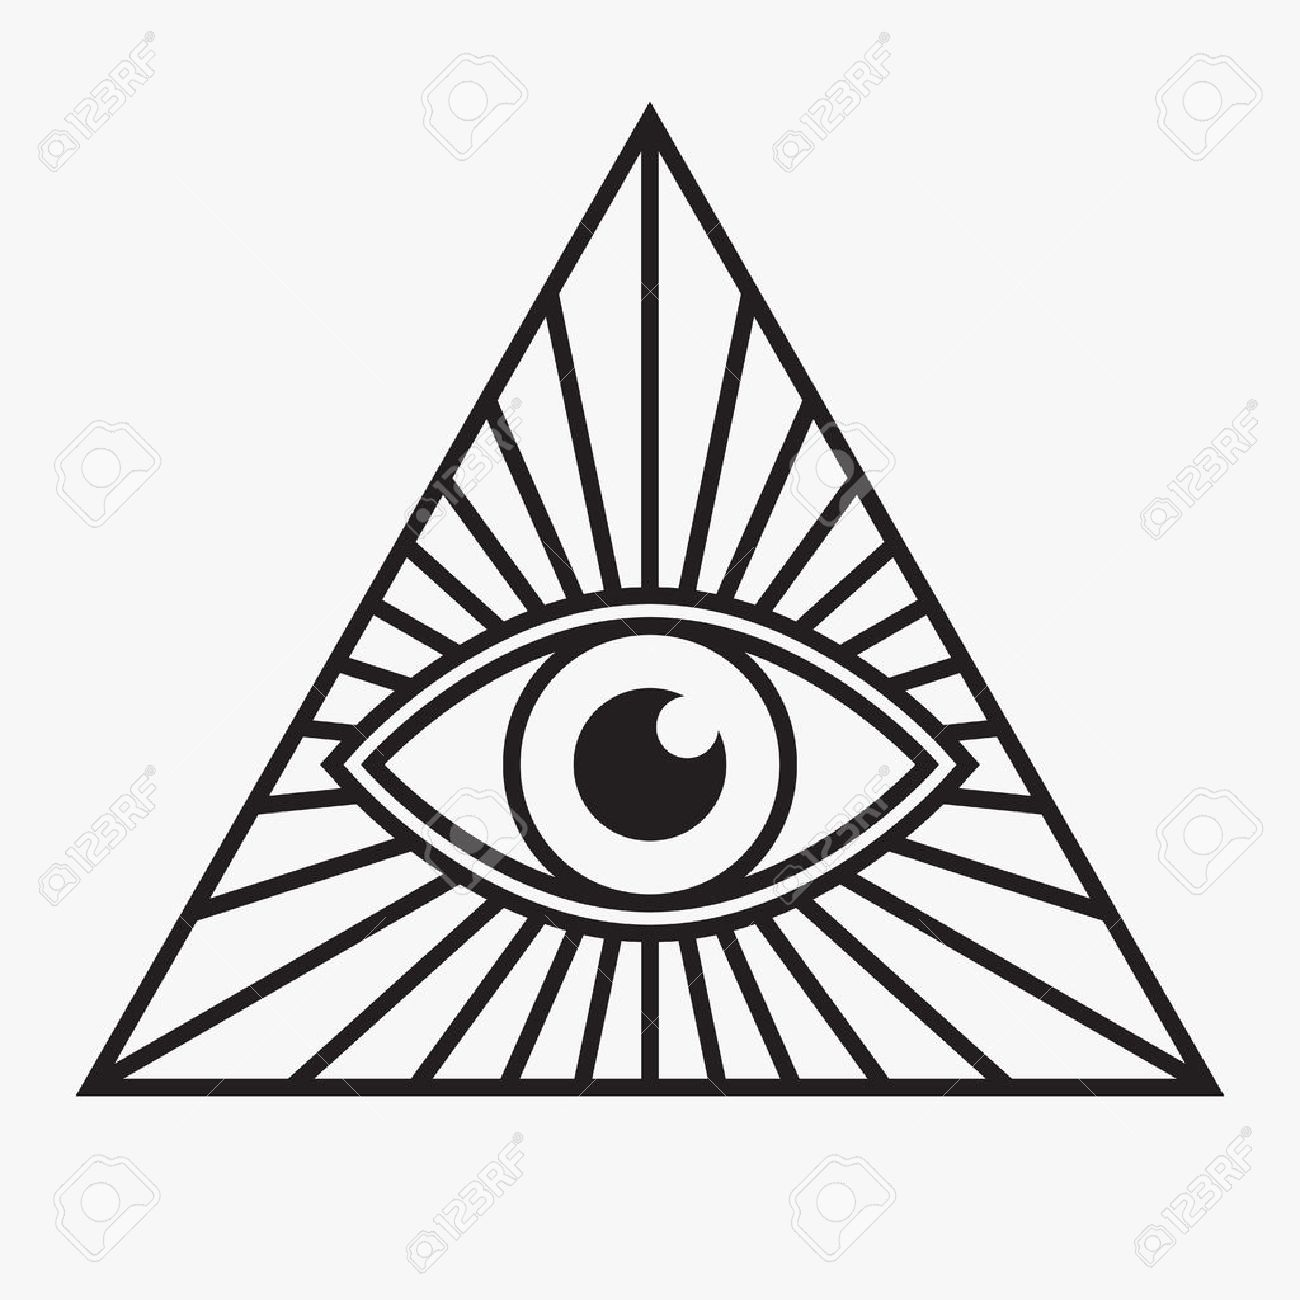 All Seeing Eye Symbol Vector Illustration